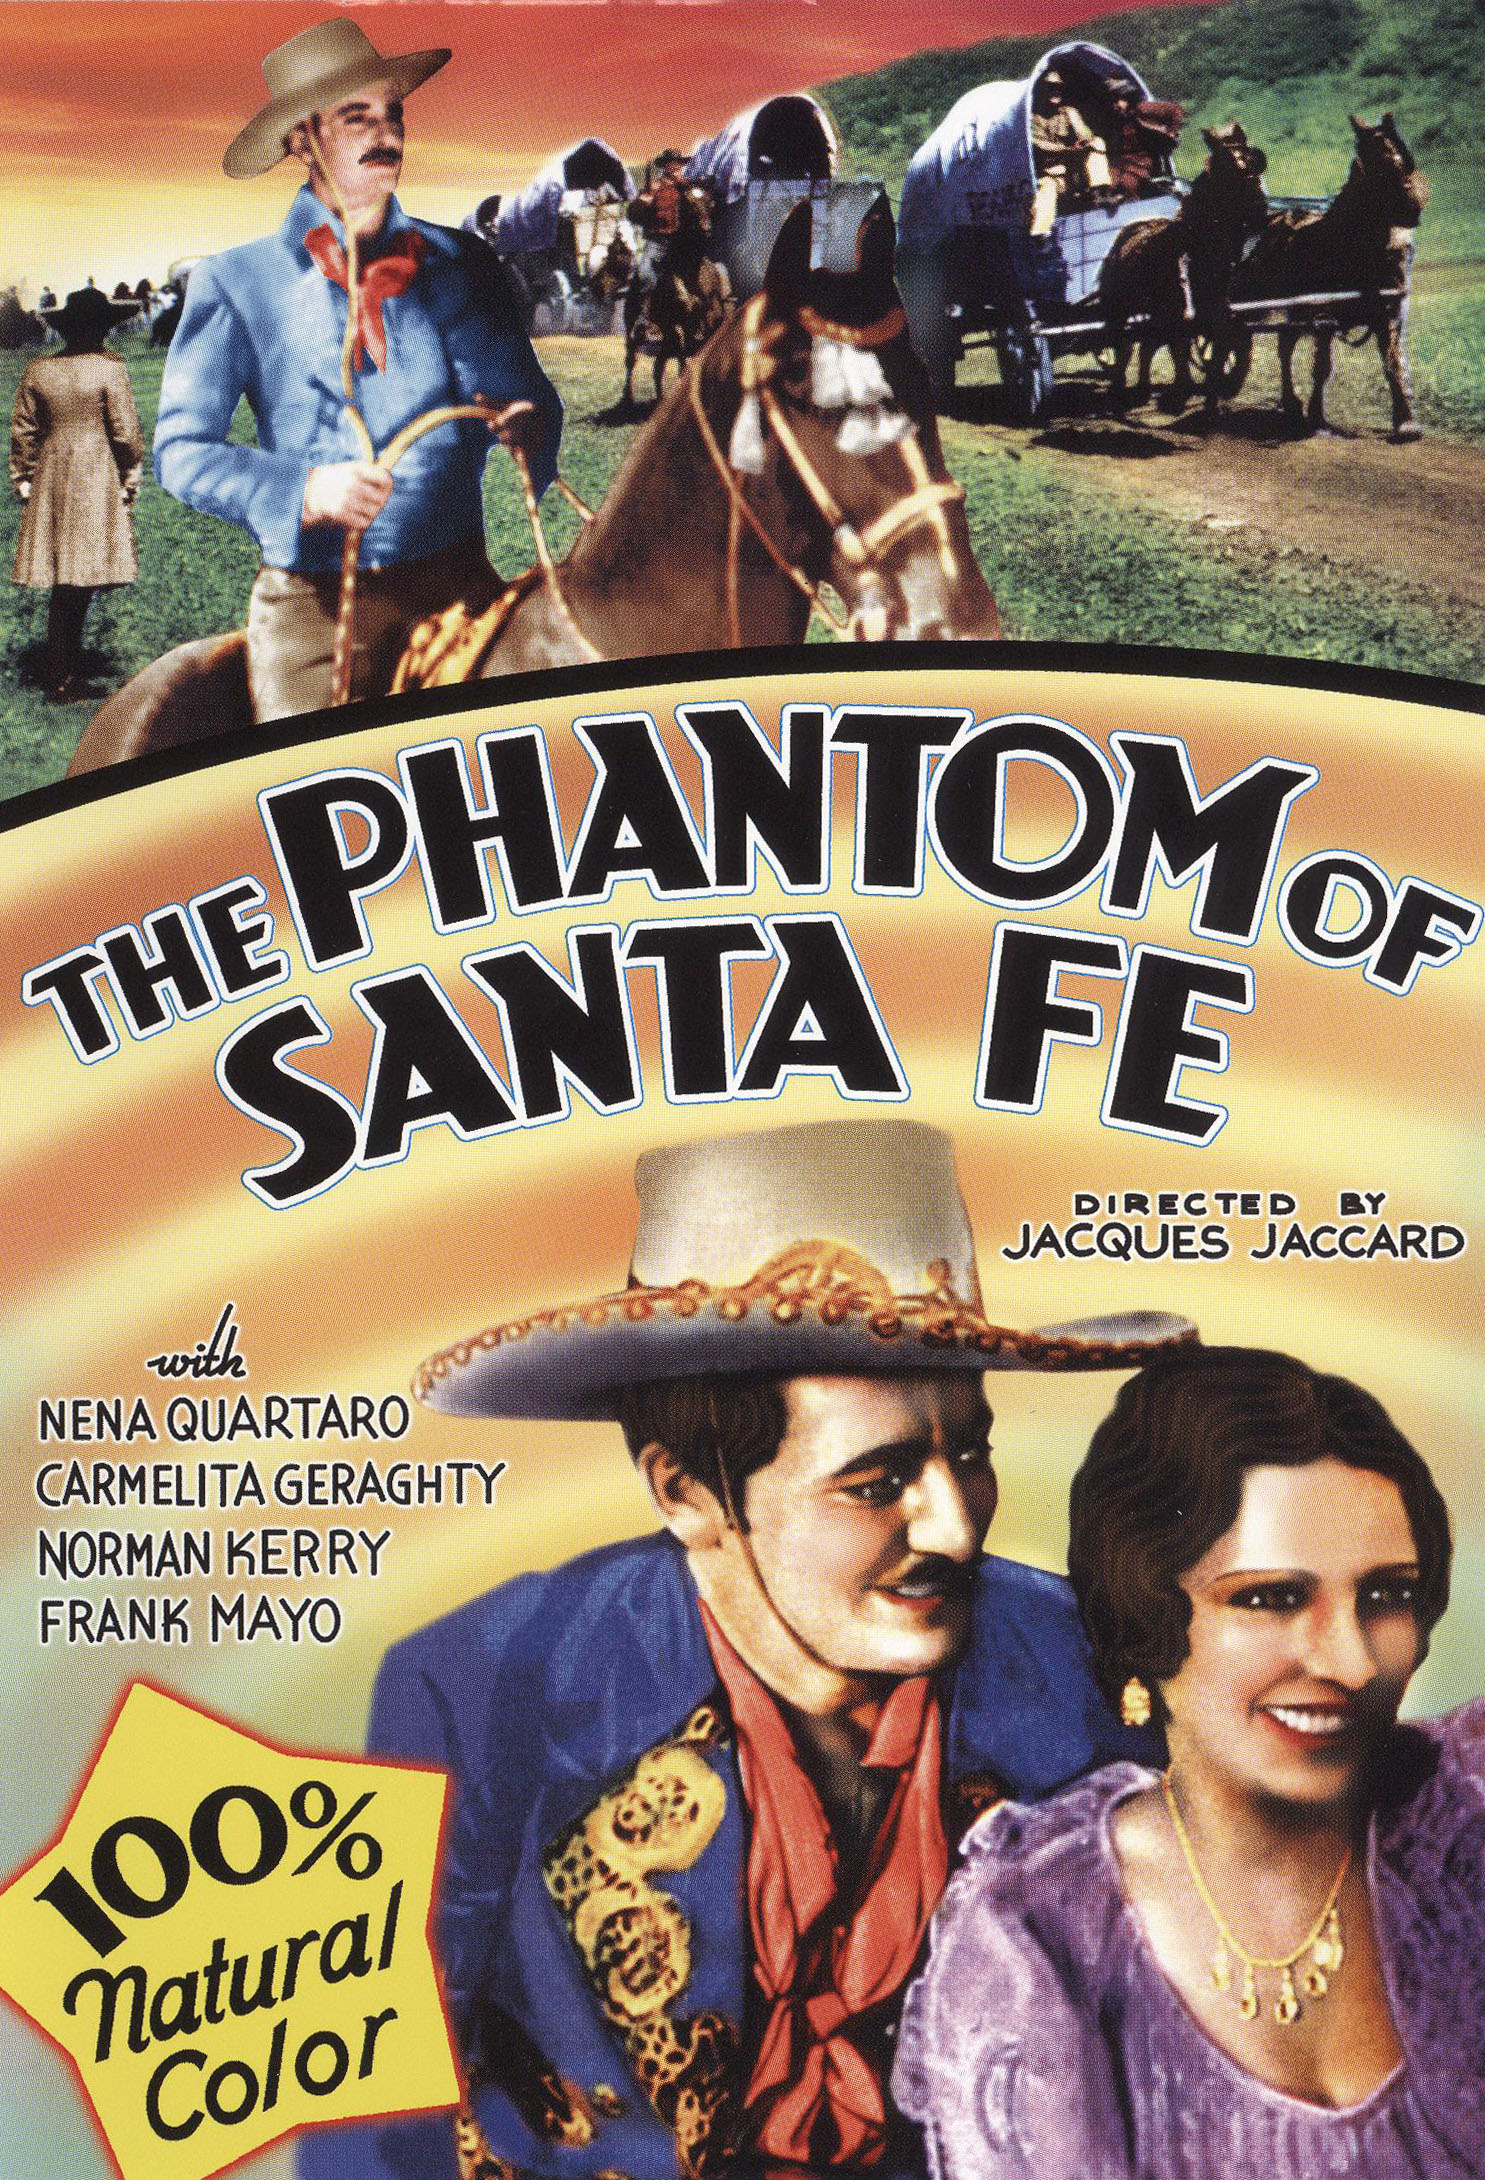 The Phantom of Santa Fe